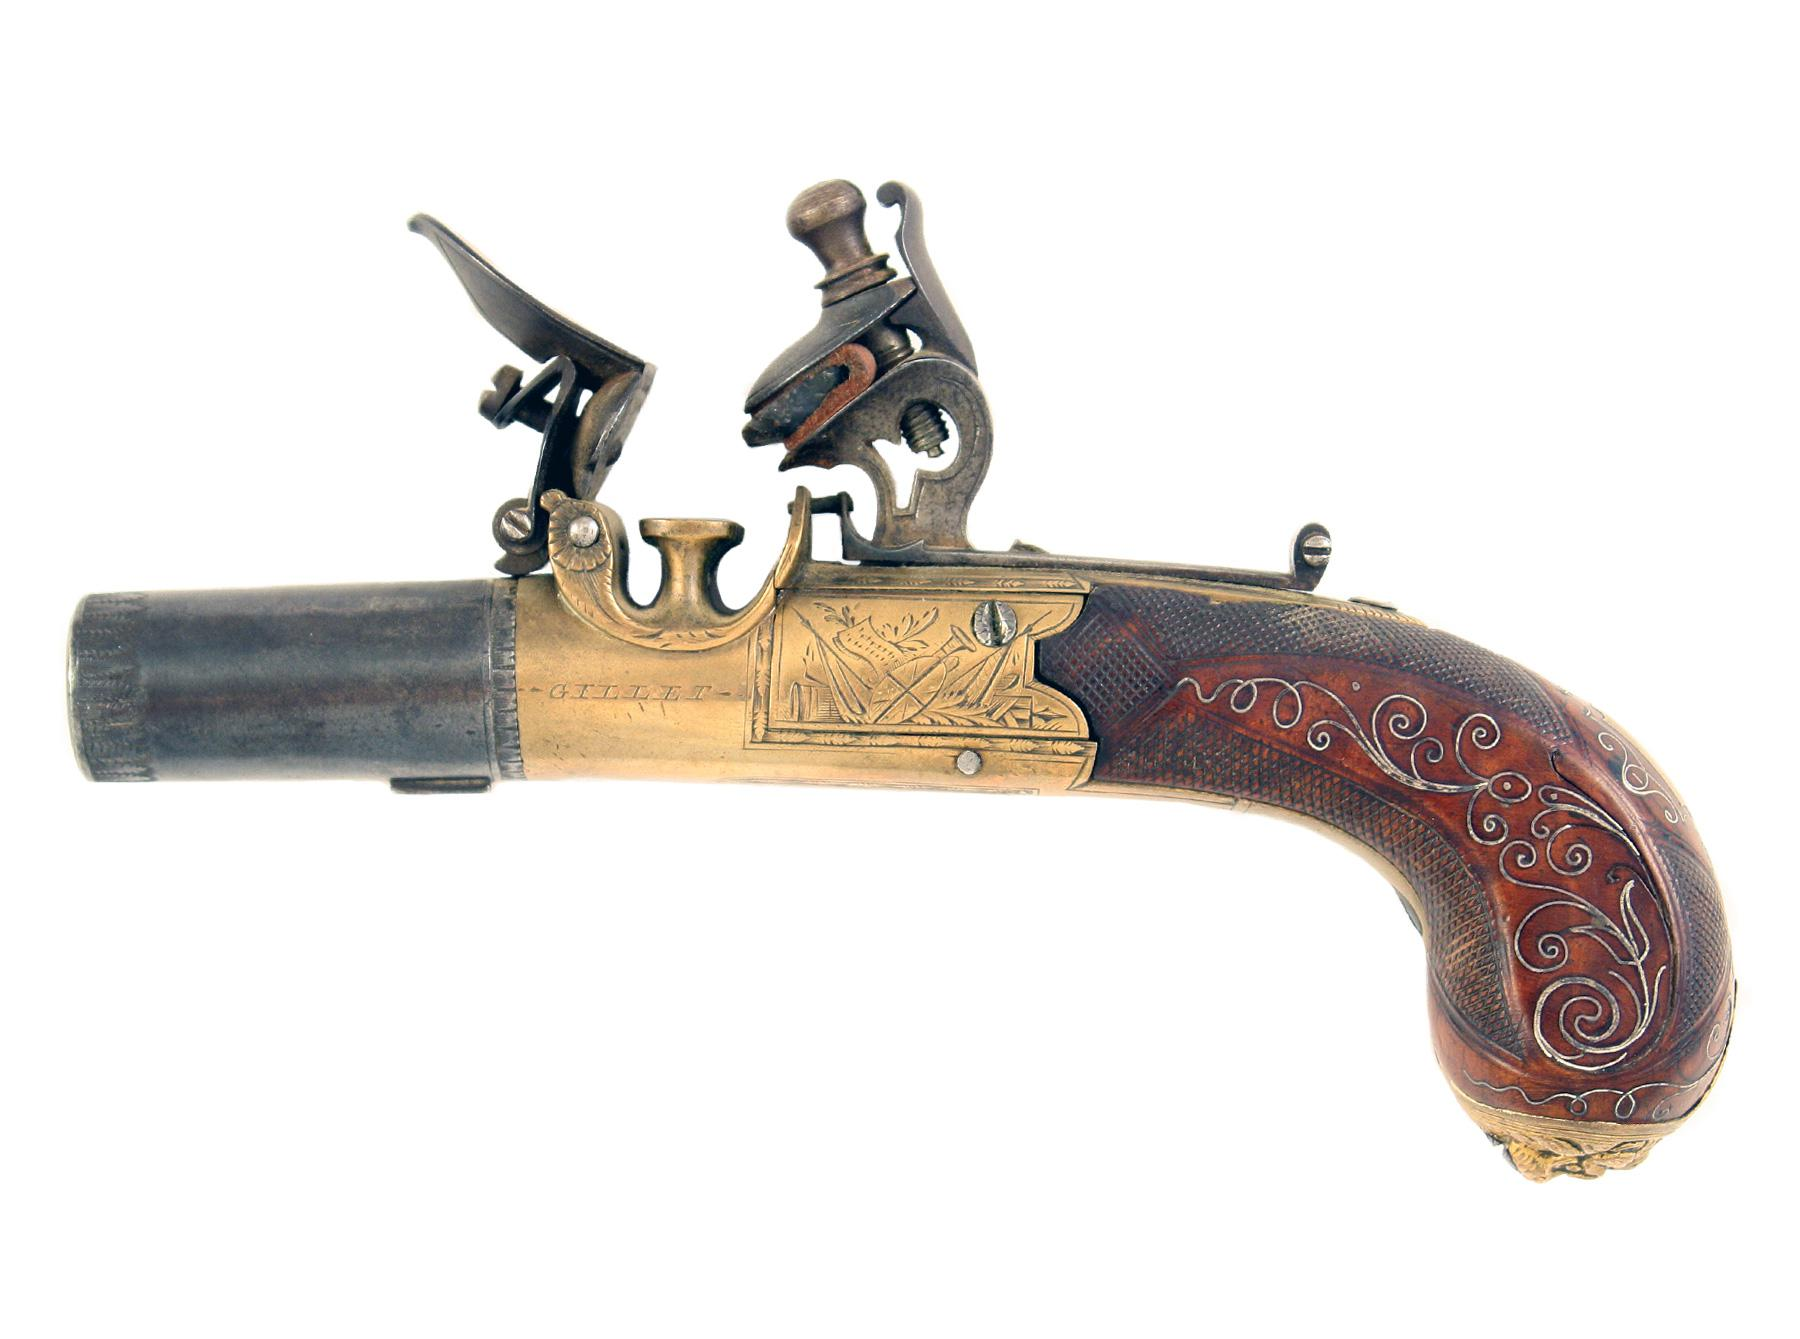 A Beautiful Brass Framed Flintlock Pocket Pistol